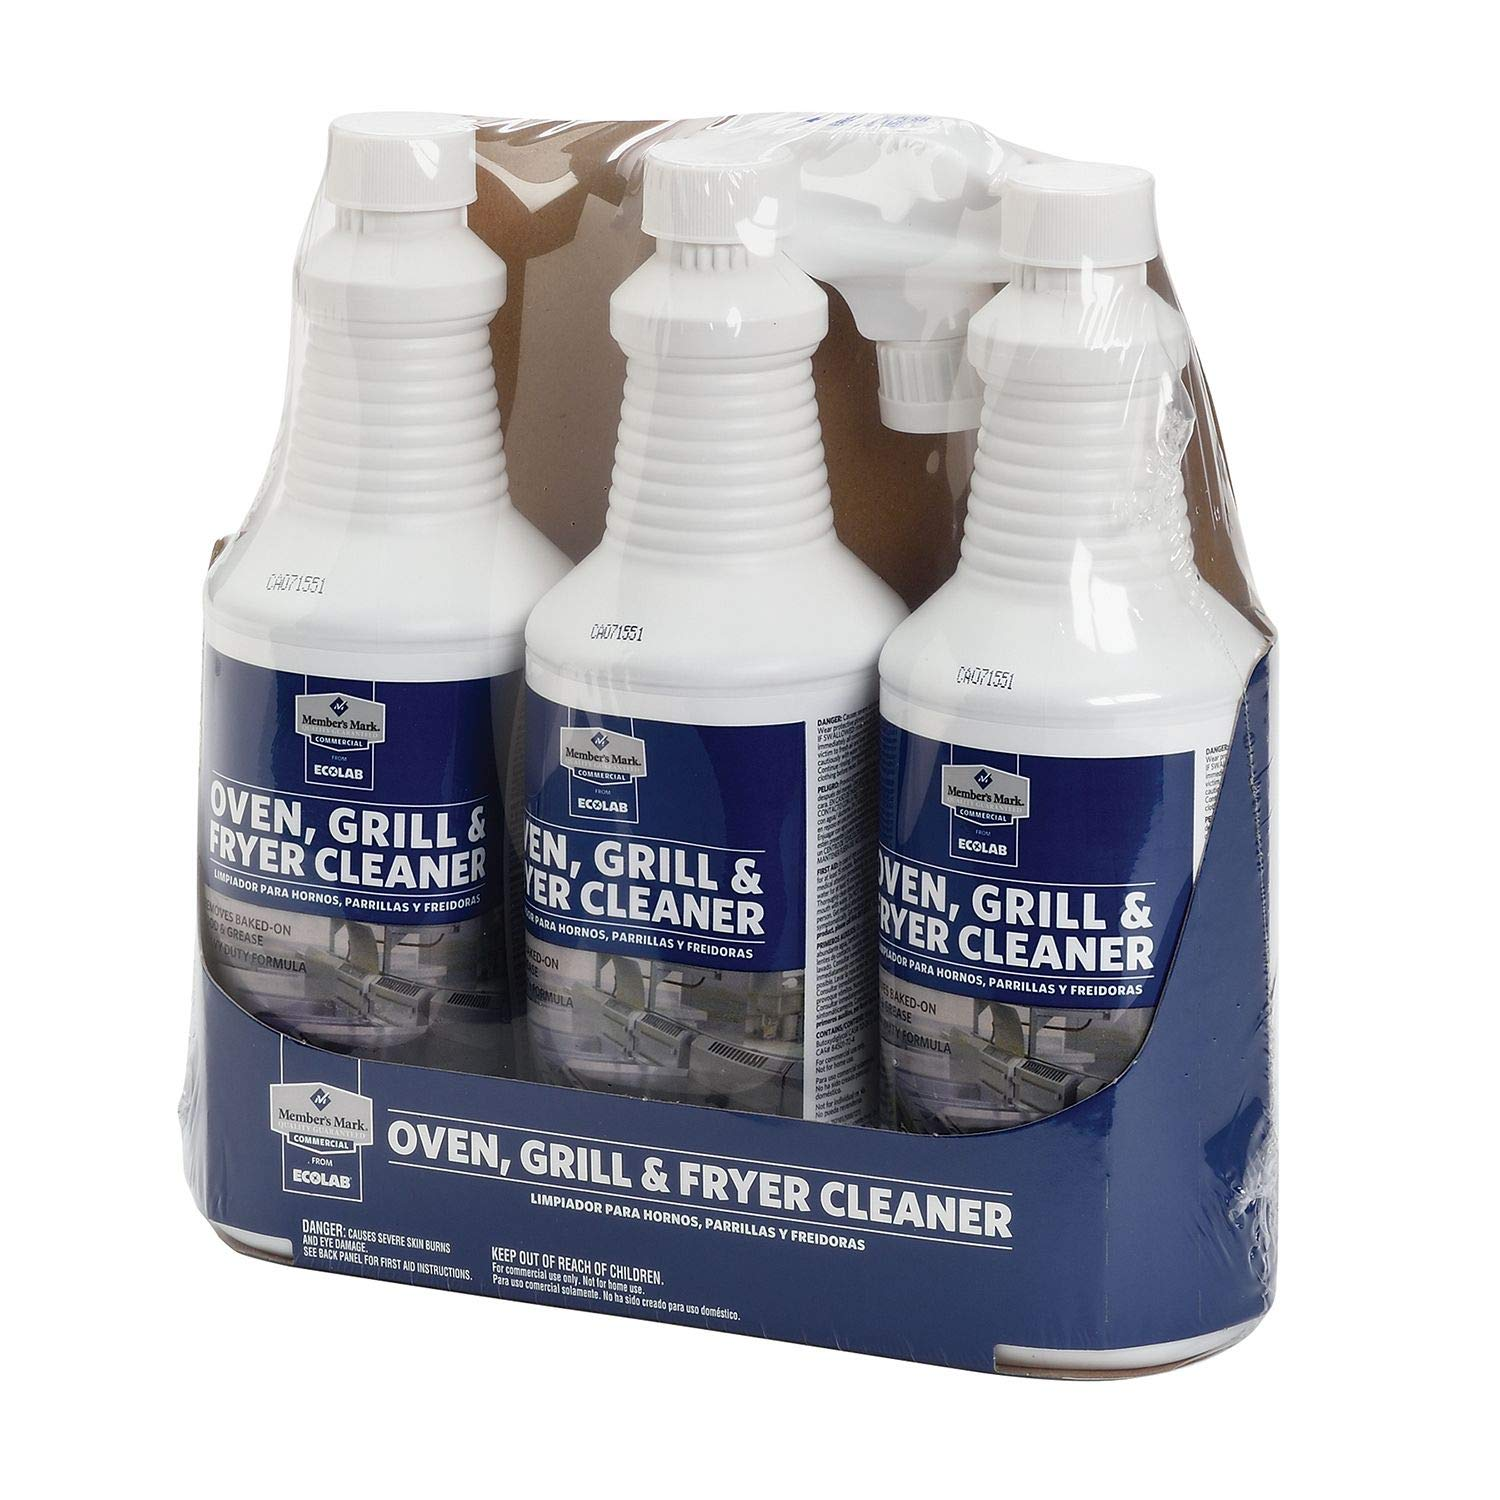 Amazon.com: Members Mark Commerical Oven, Grill and Fryer Cleaner by Ecolab (32 oz., 3 pk.) AS: Health & Personal Care